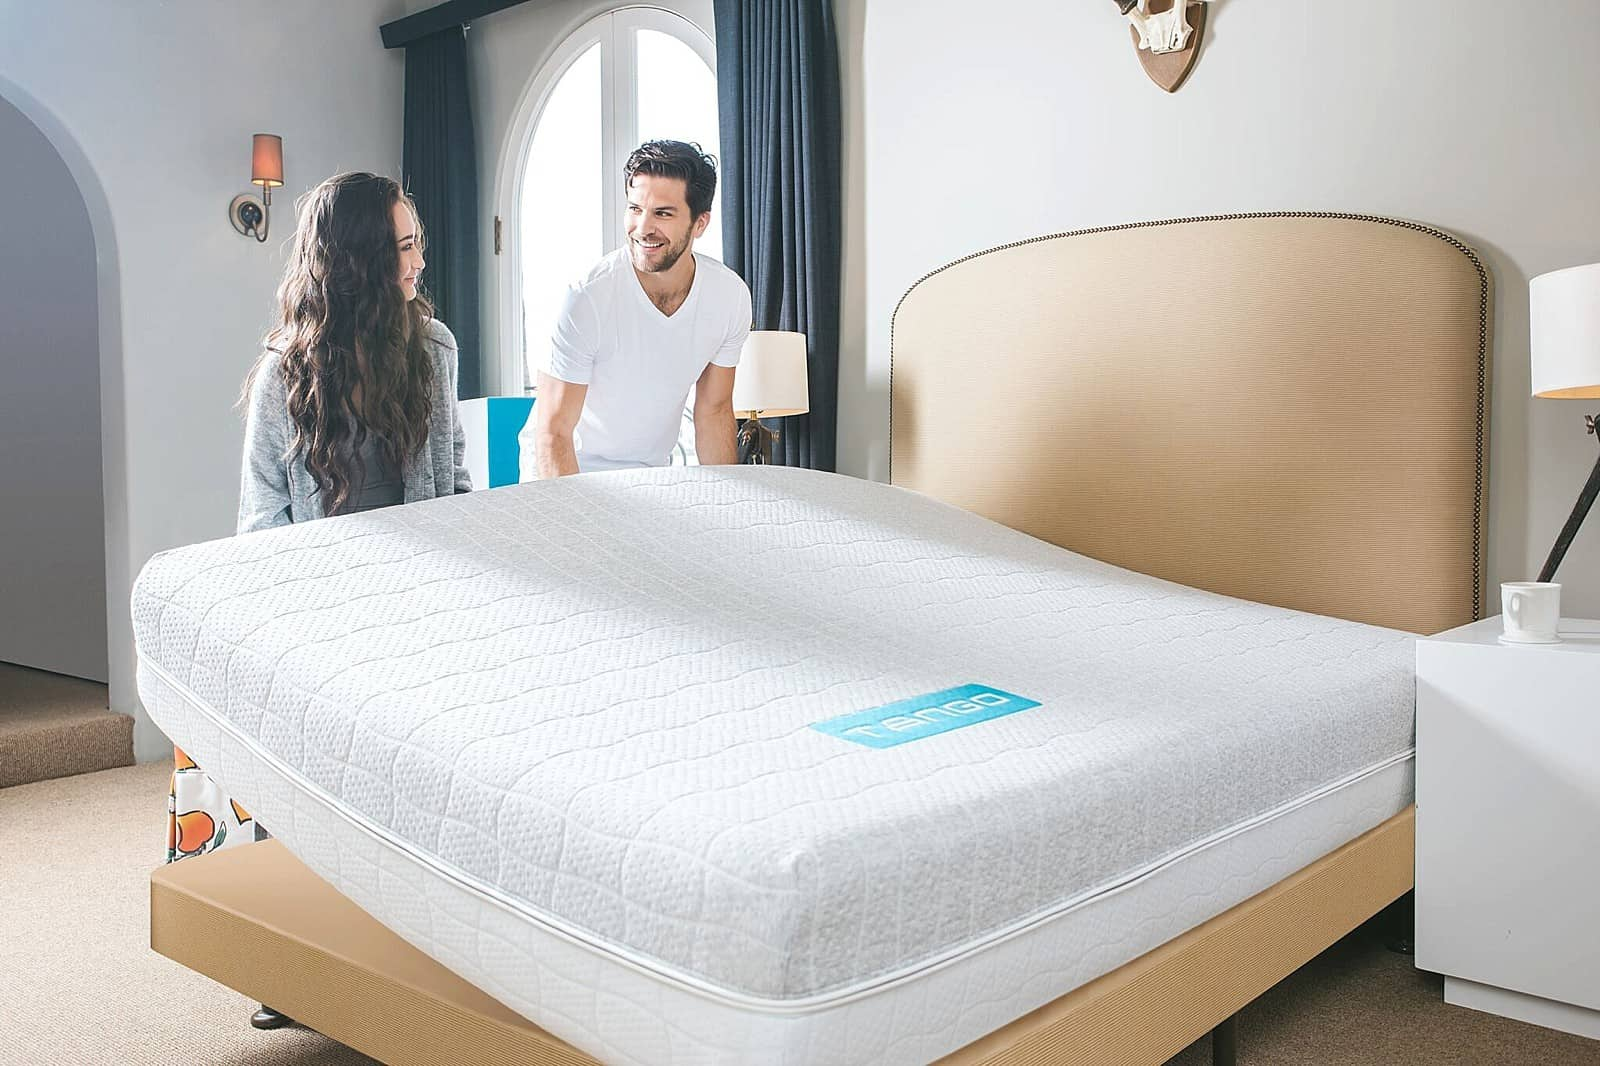 The five model Bespoke by Marshall ® collection is the ultimate in luxury. Each Bespoke mattress is hand upholstered to offer a deep seated, luxurious comfort with full support and excellent pressure-relieving response to the body's natural contours.